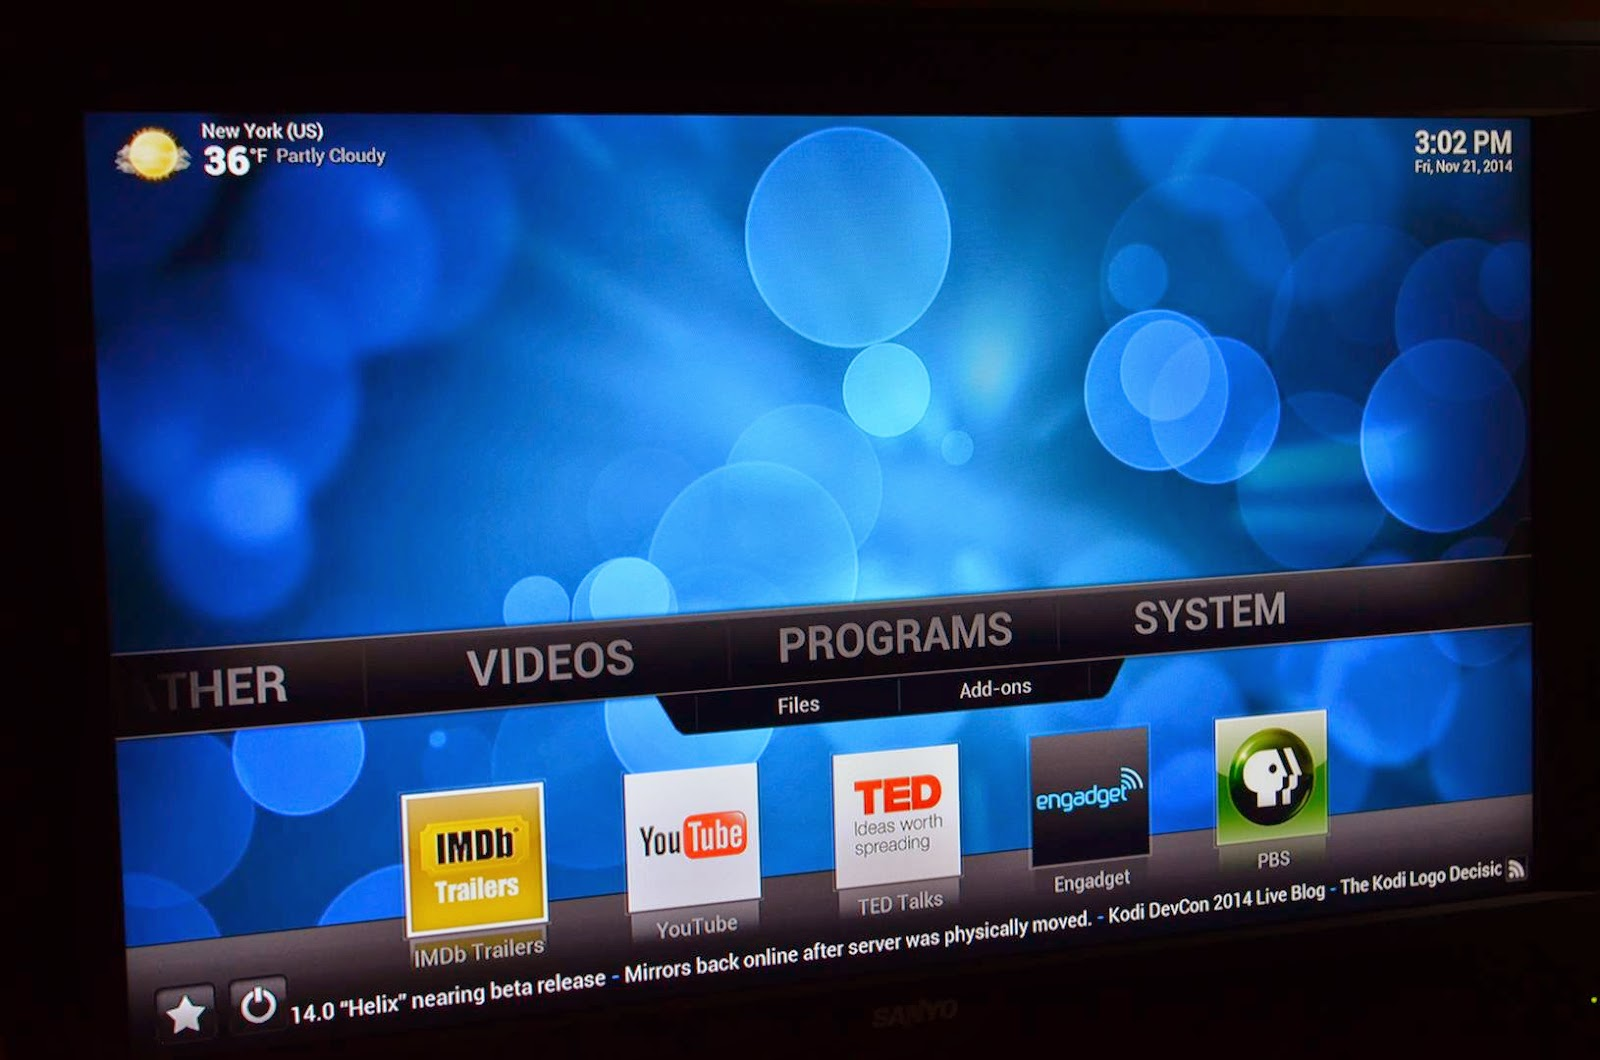 how to search youtube on samsung smart tv